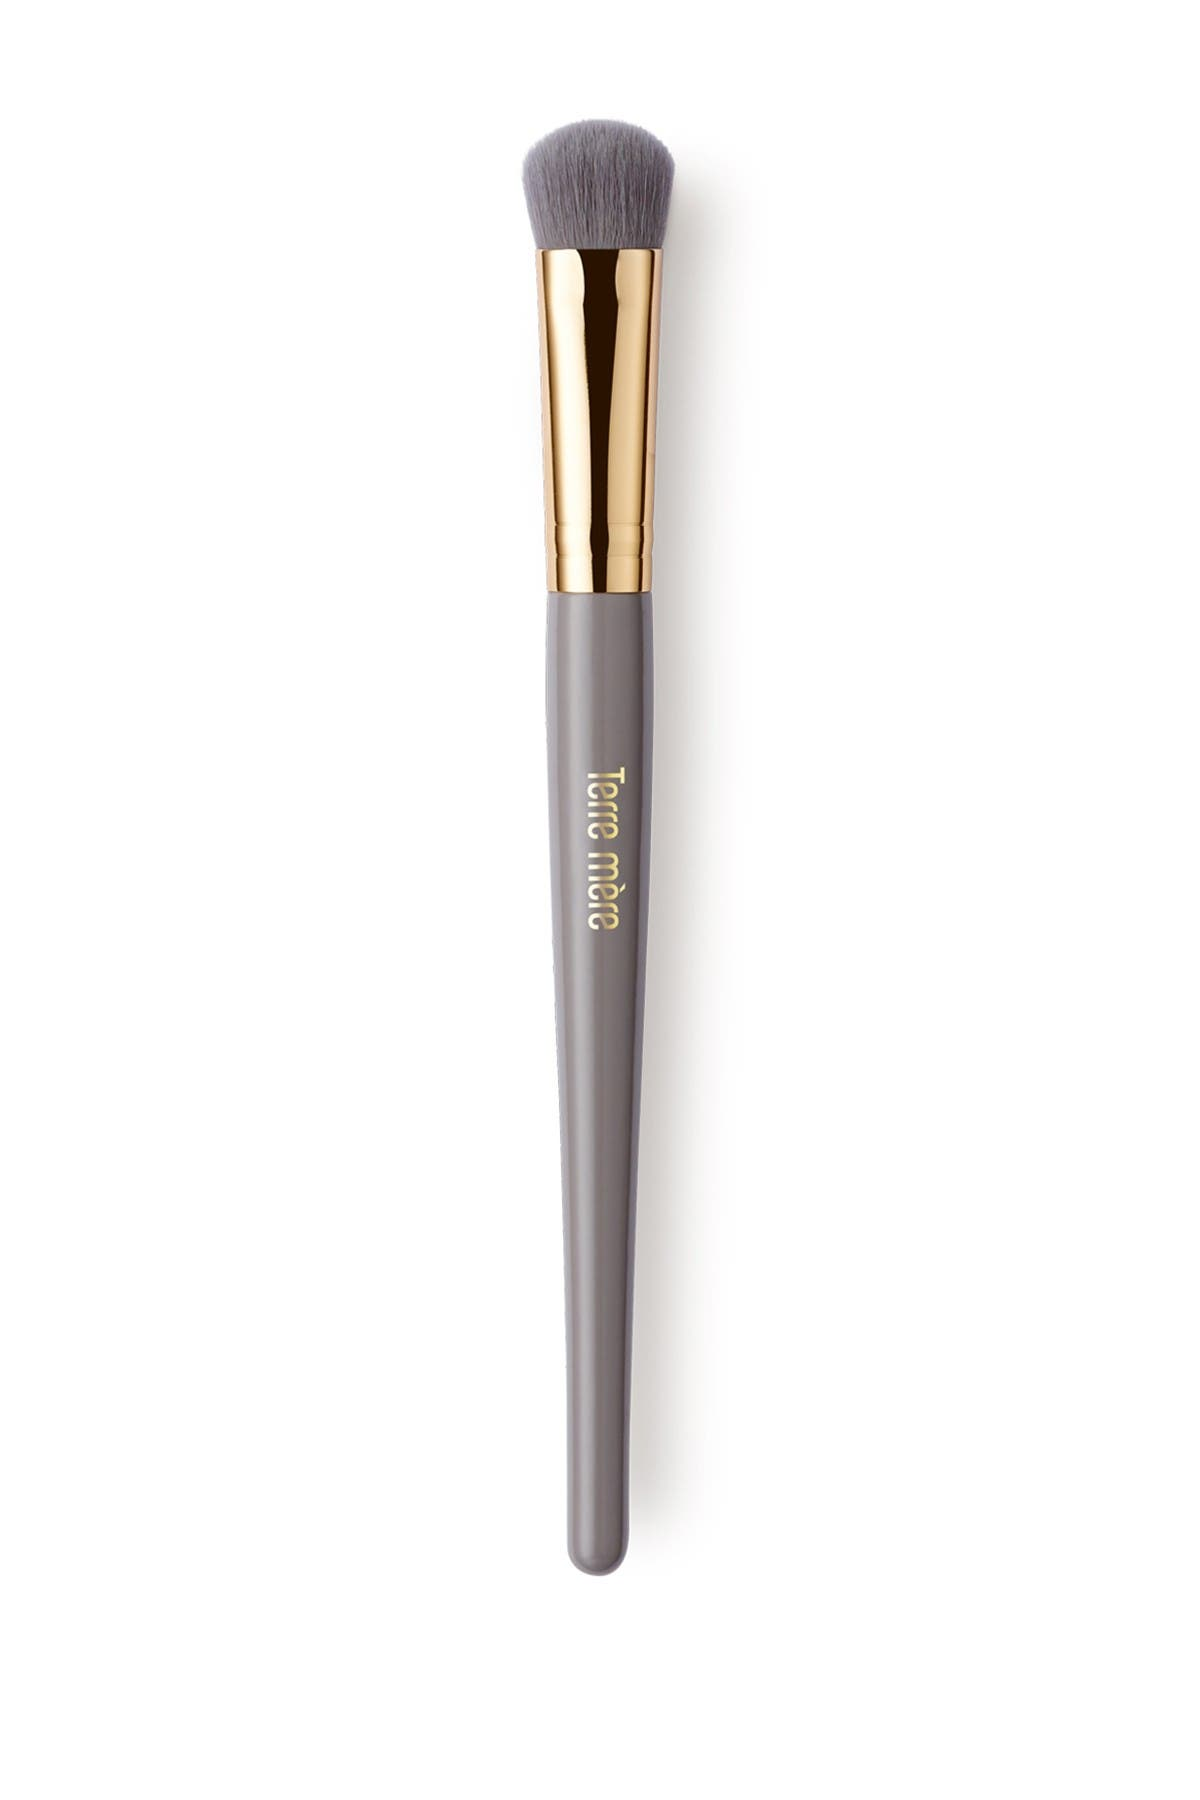 Image of Terre Mere Small Contour Powder Brush